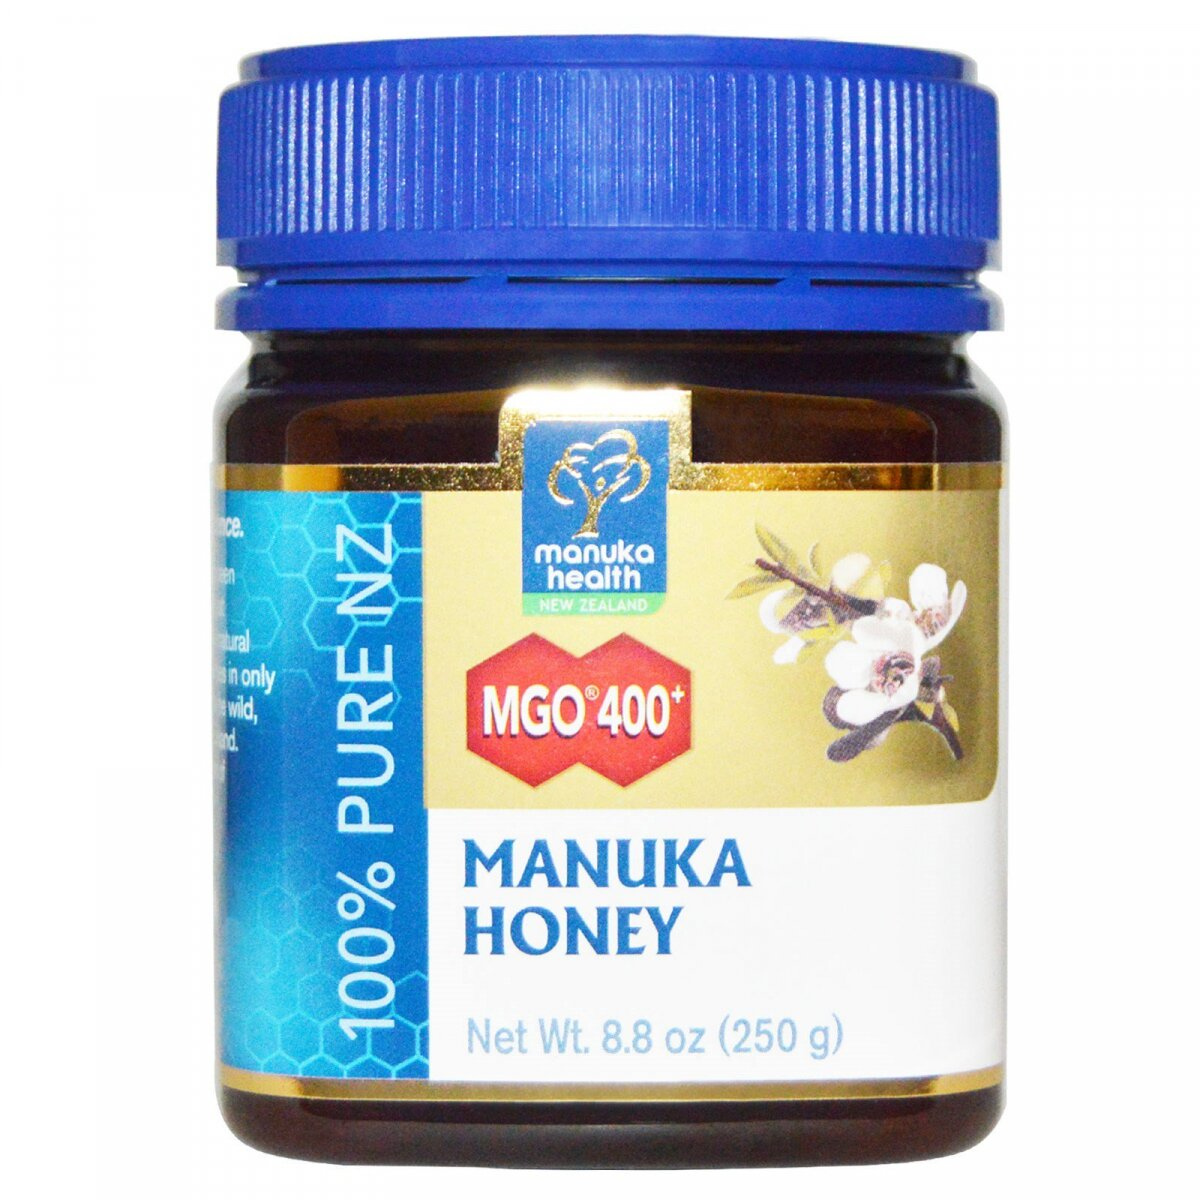 Манука мед, Manuka Honey, Manuka Health, MGO 400+, (250 г)